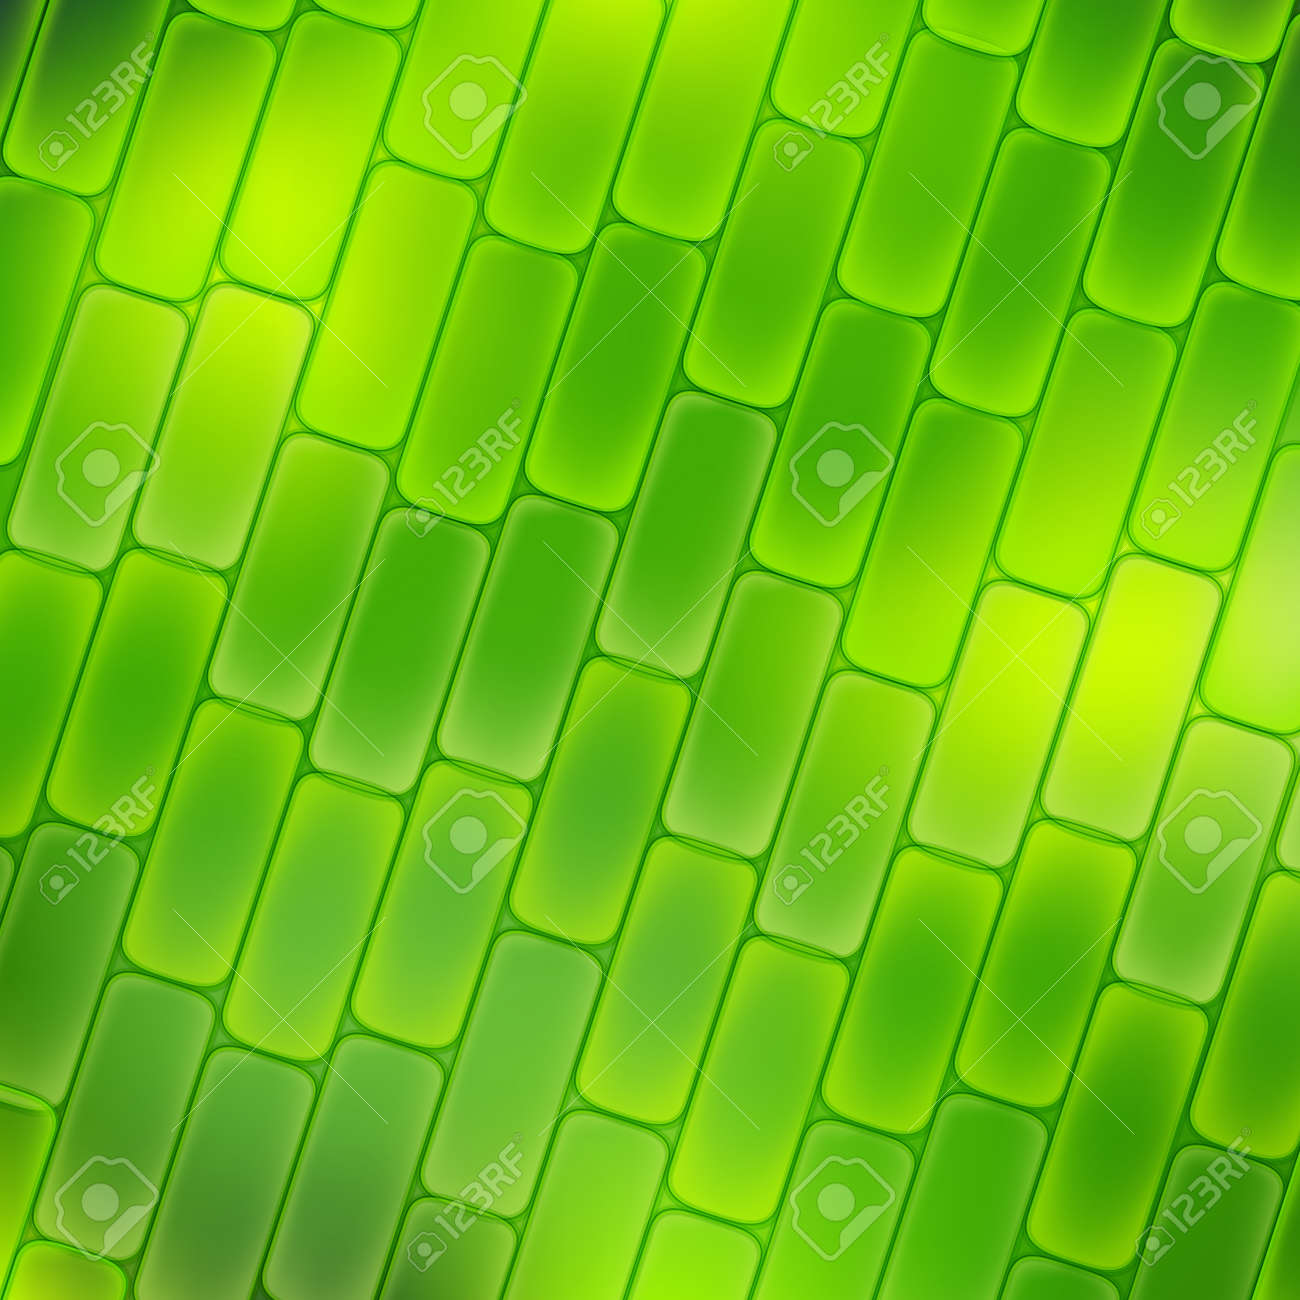 plant cell magnification. green background. Vector illustration - 173611398